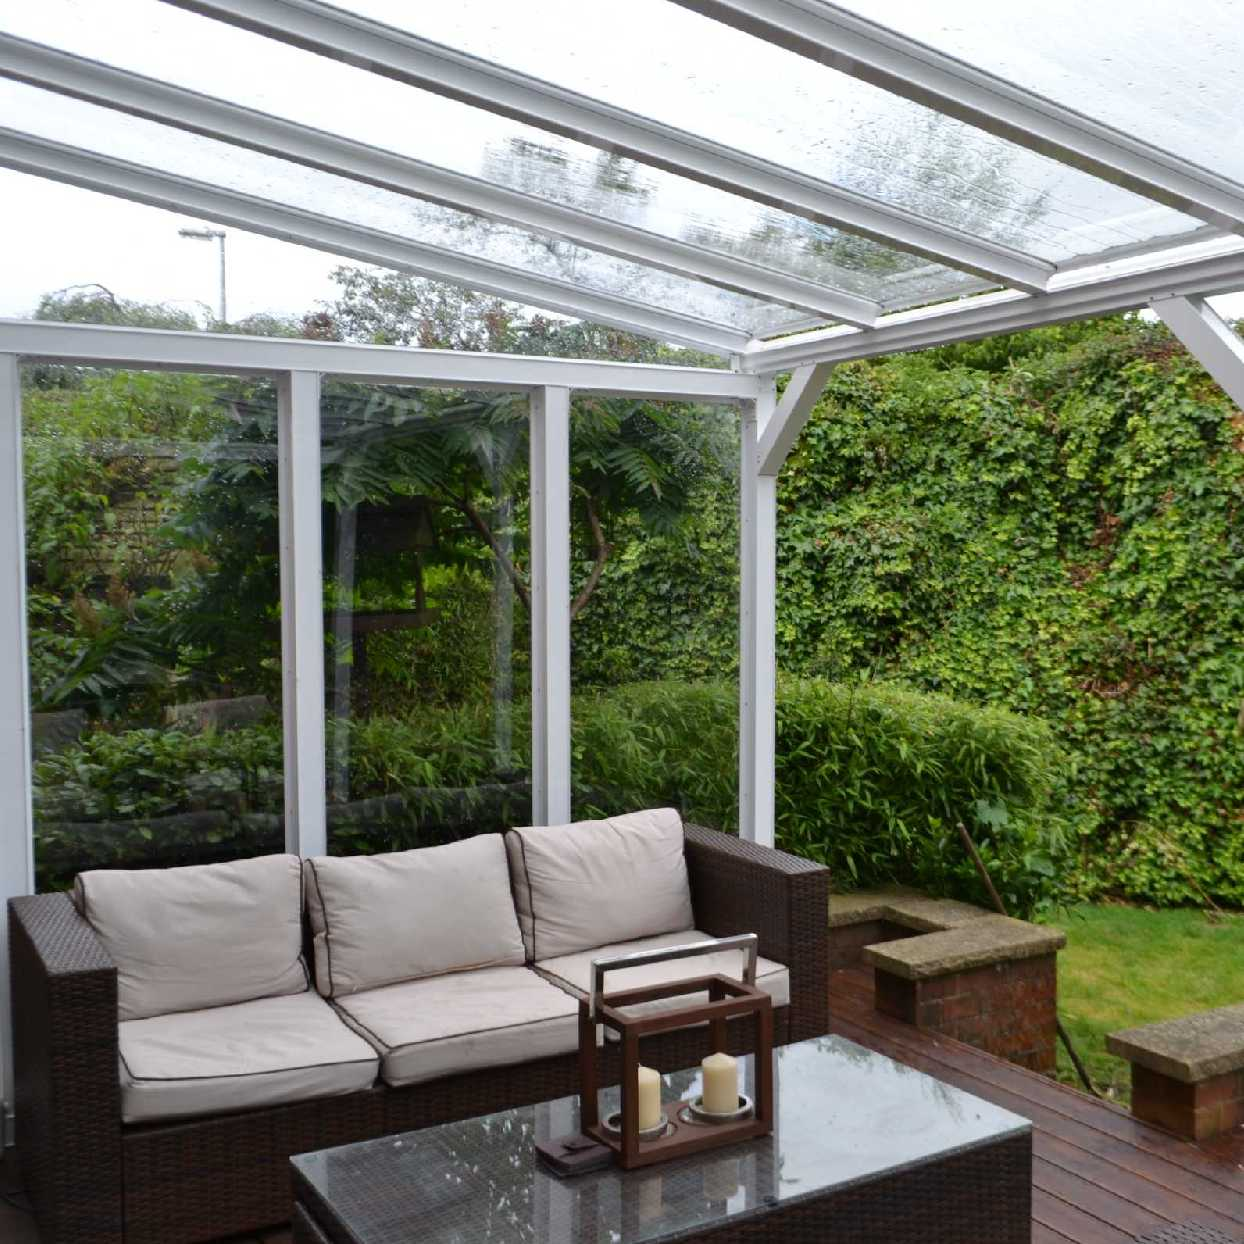 Omega Smart Lean-To Canopy with 6mm Glass Clear Plate Polycarbonate Glazing - 9.1m (W) x 3.0m (P), (5) Supporting Posts